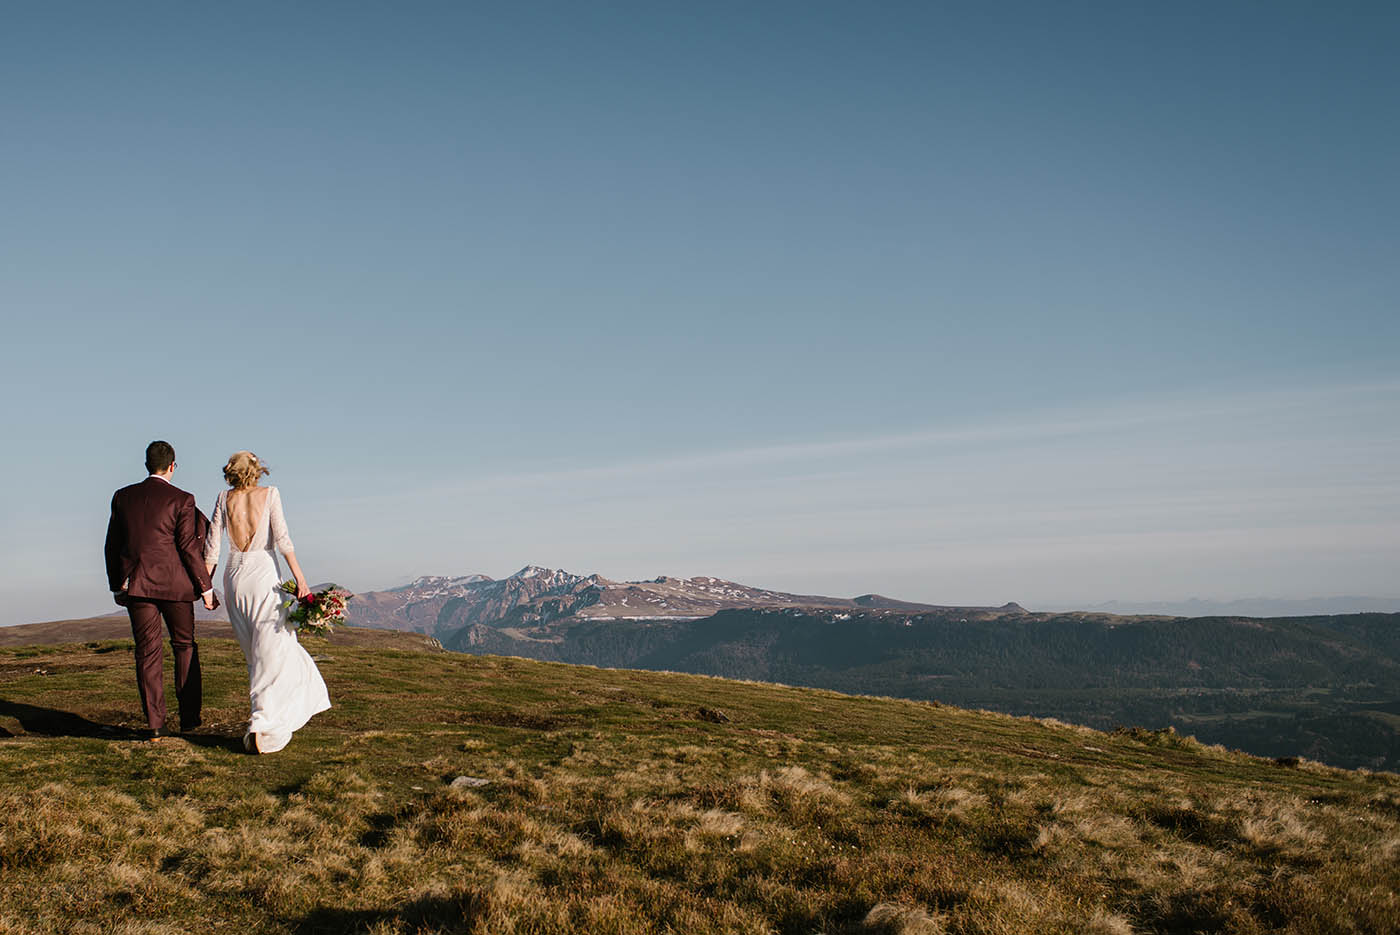 home-priscilliahervier-photographe-mariages-auvergne-sancy